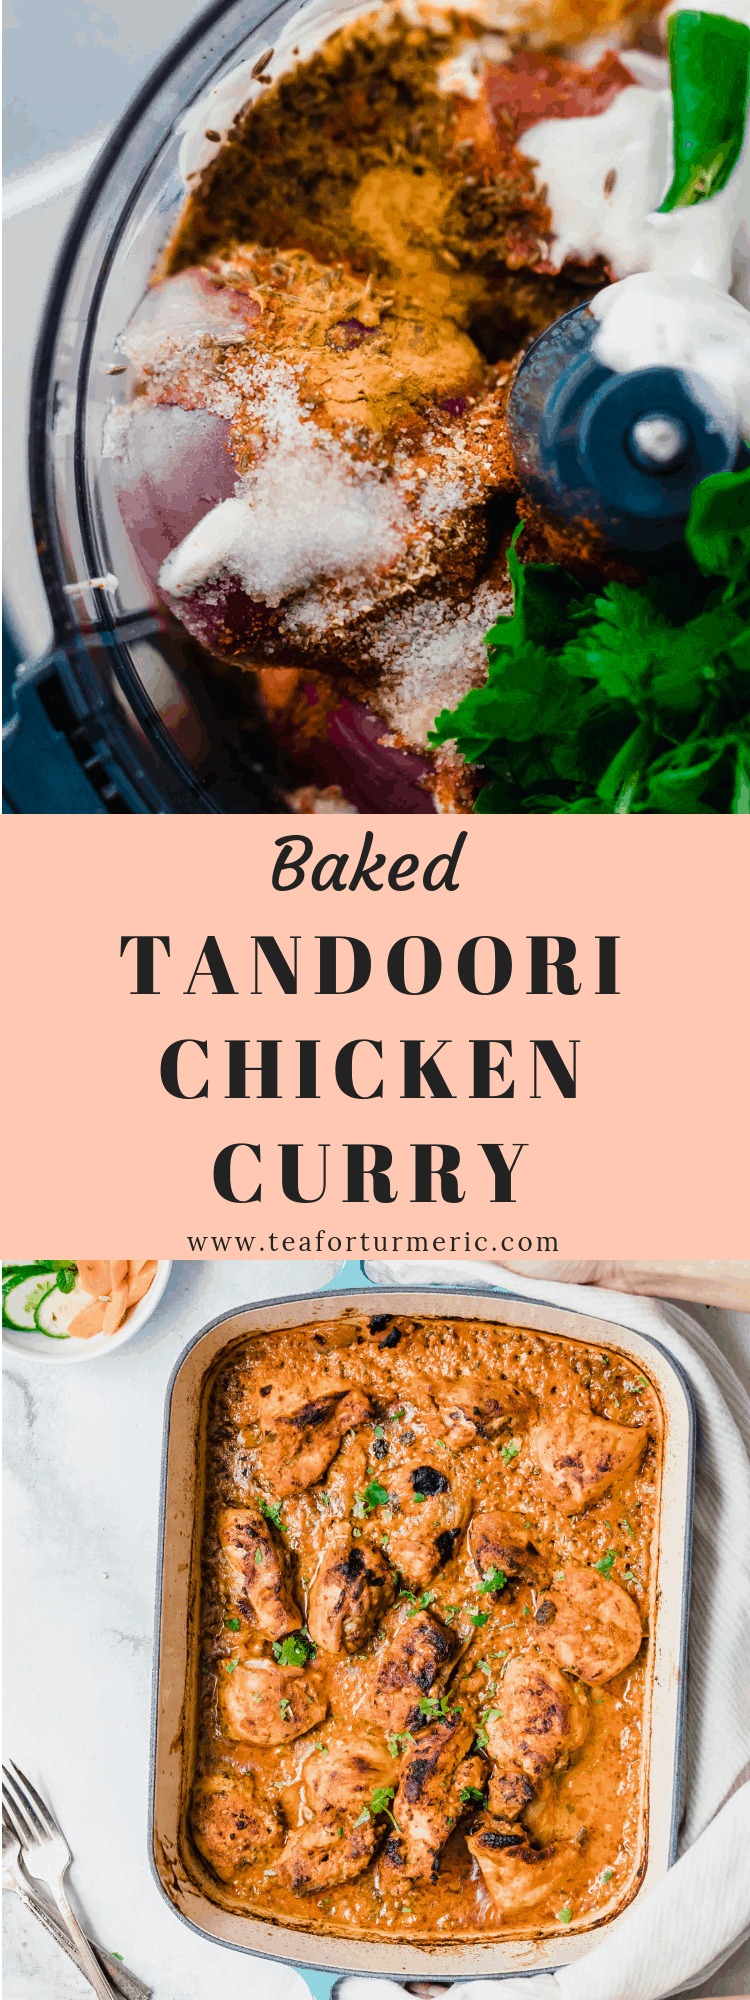 This Baked Tandoori Chicken curry is so easy to prepare (just blend the ingredients in a food processor, marinate, & bake) and perfect for guests! #chickencurry #bakedchicken #bakedcurry #tandoorichicken